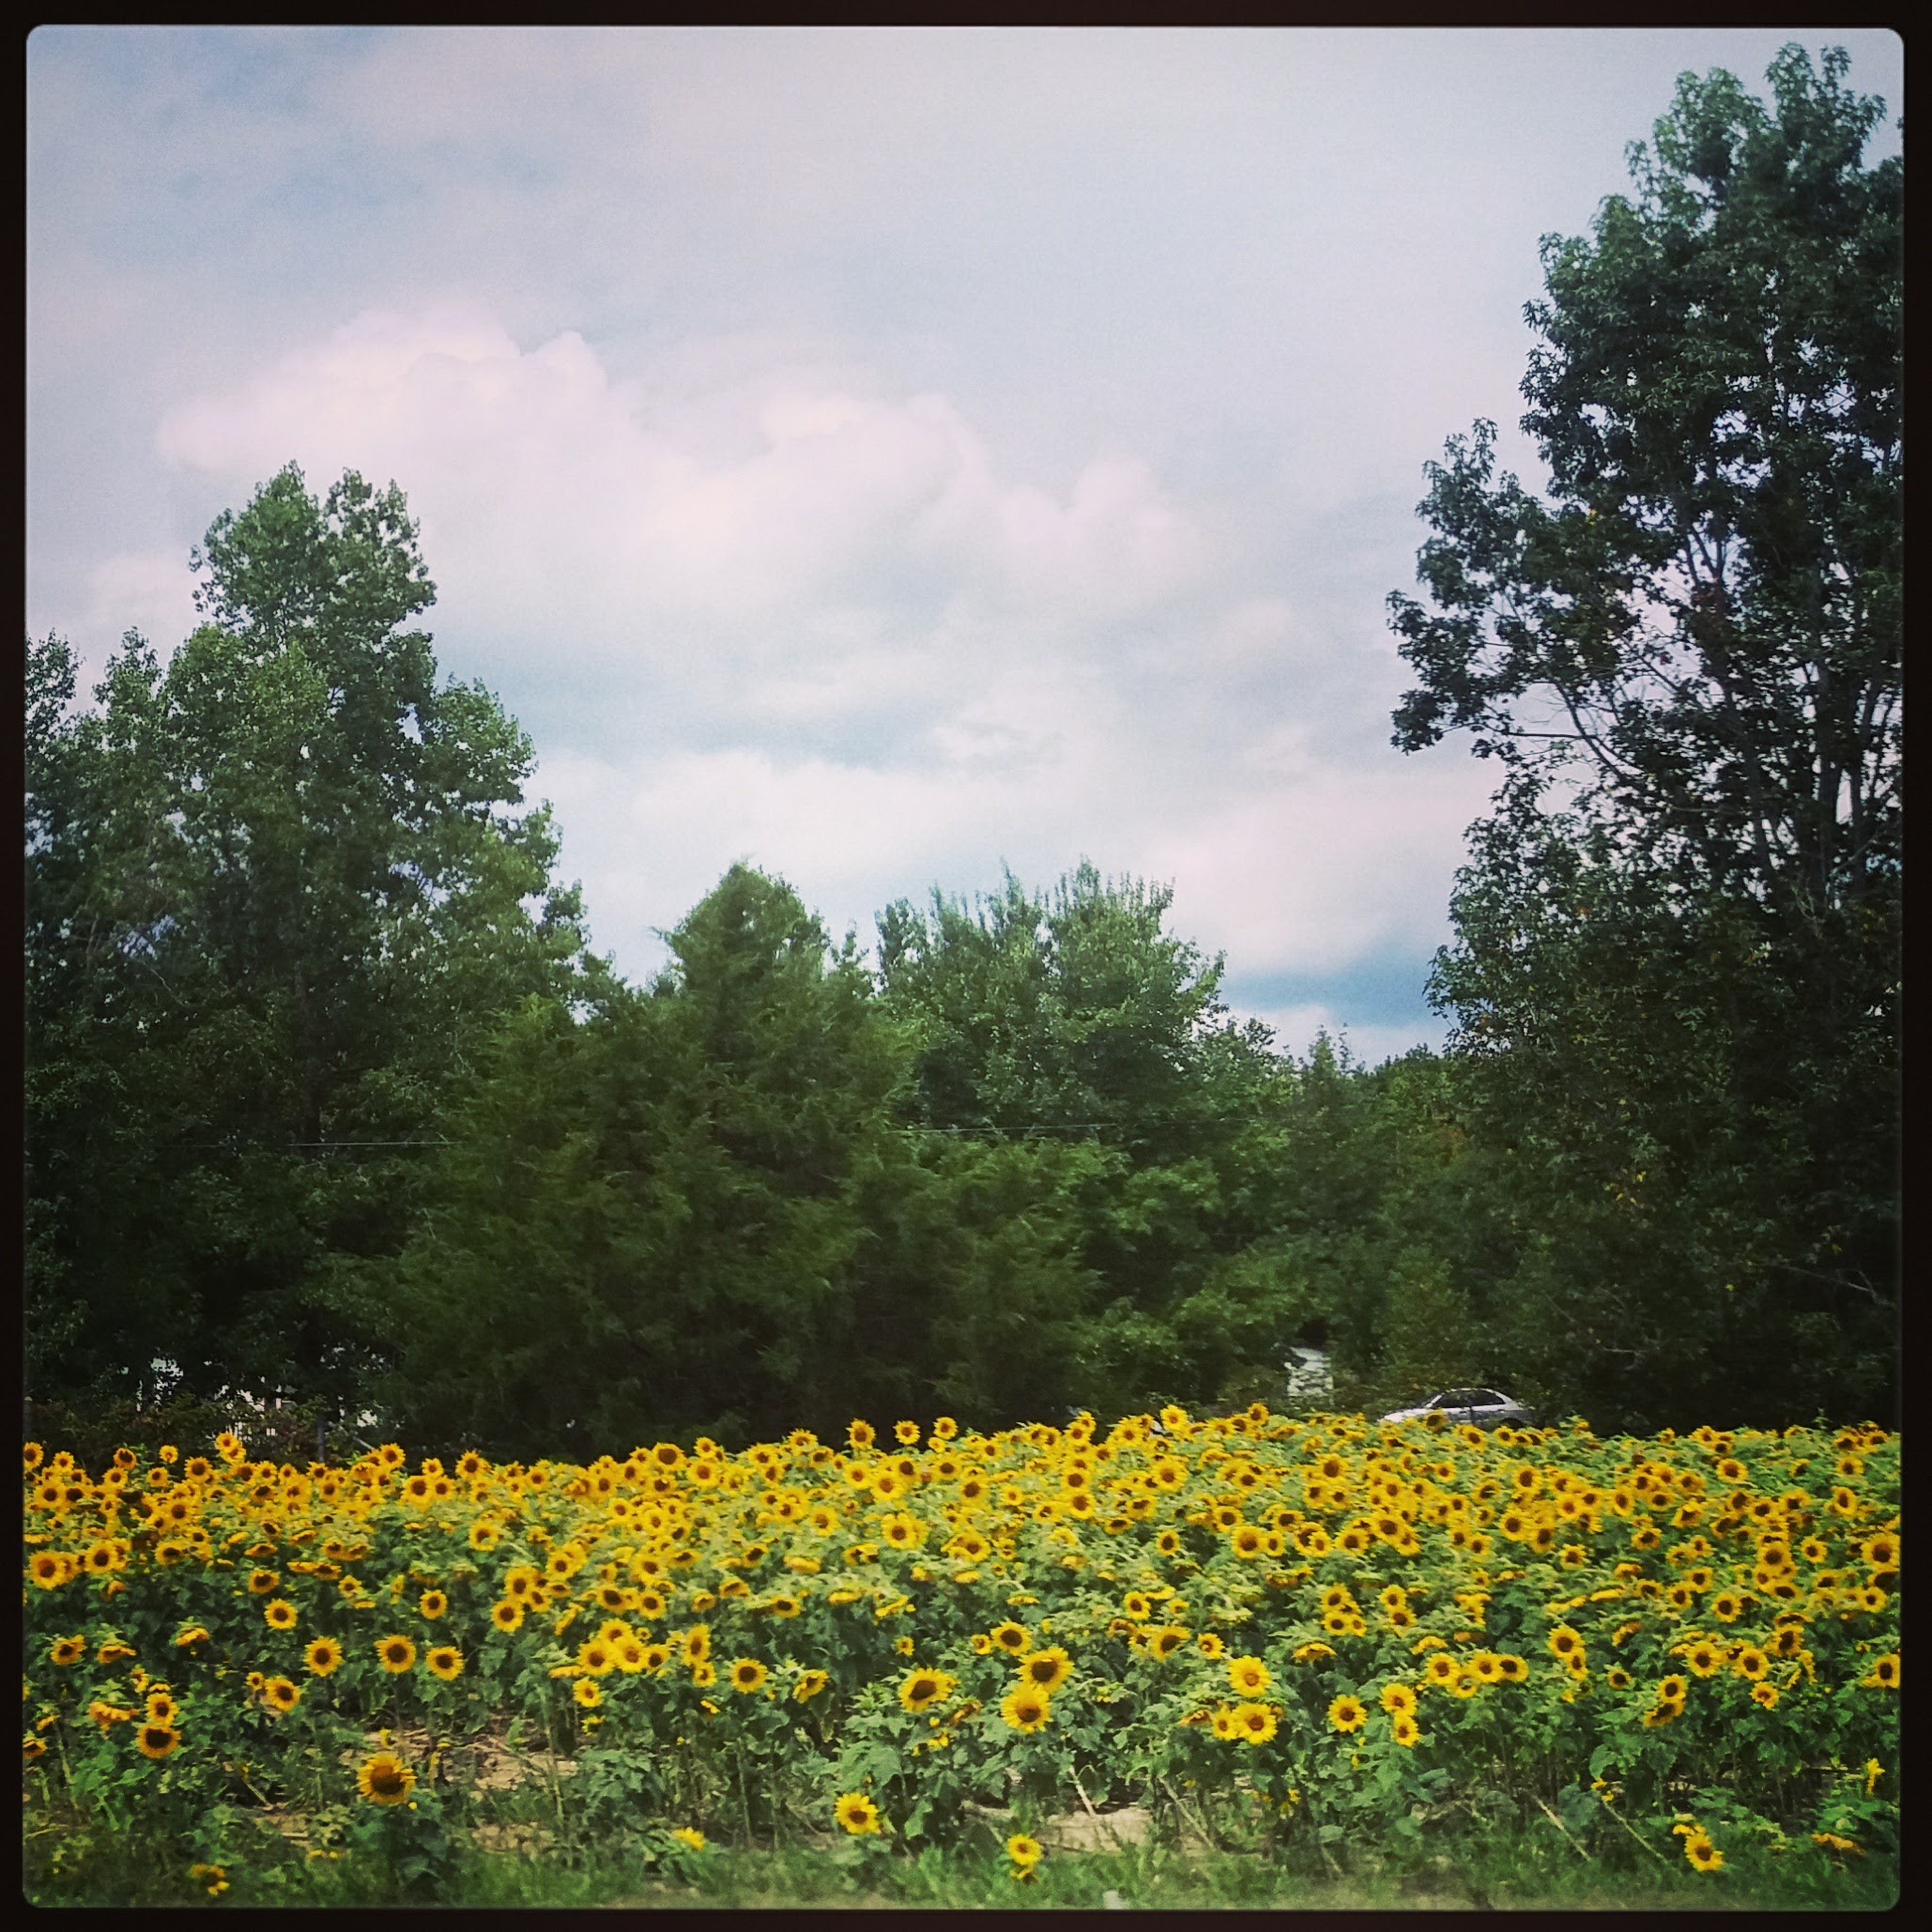 Sunflowers on the side of the road (Georgia?)